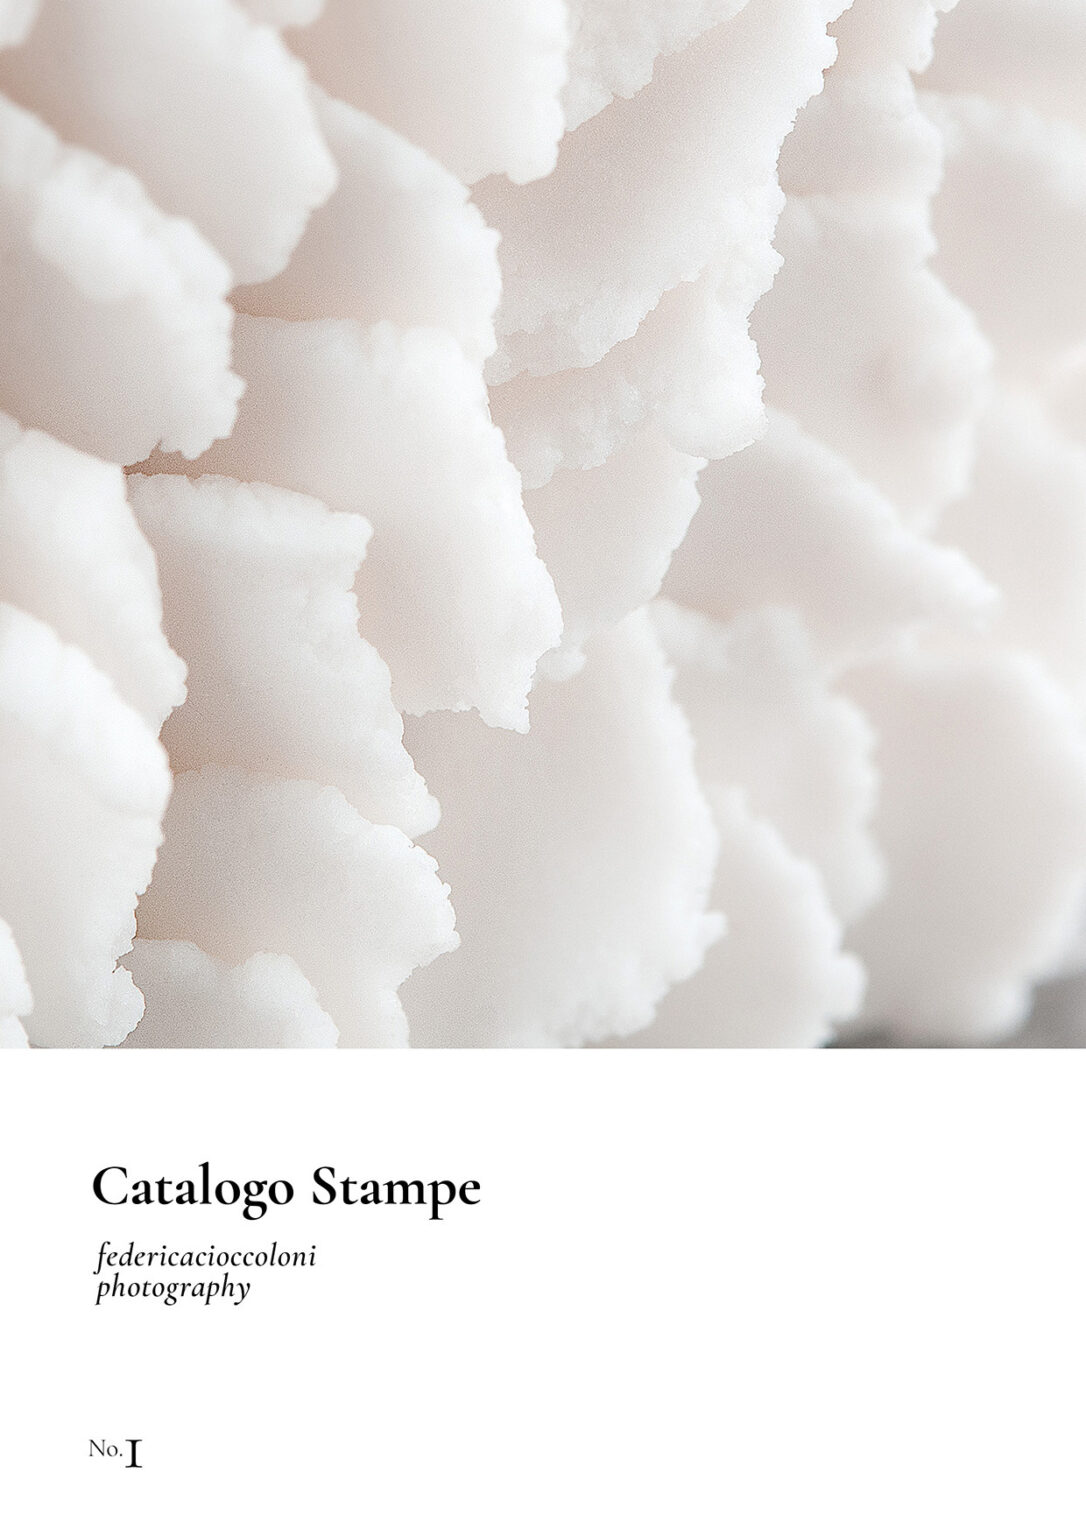 Cataloghi stampe